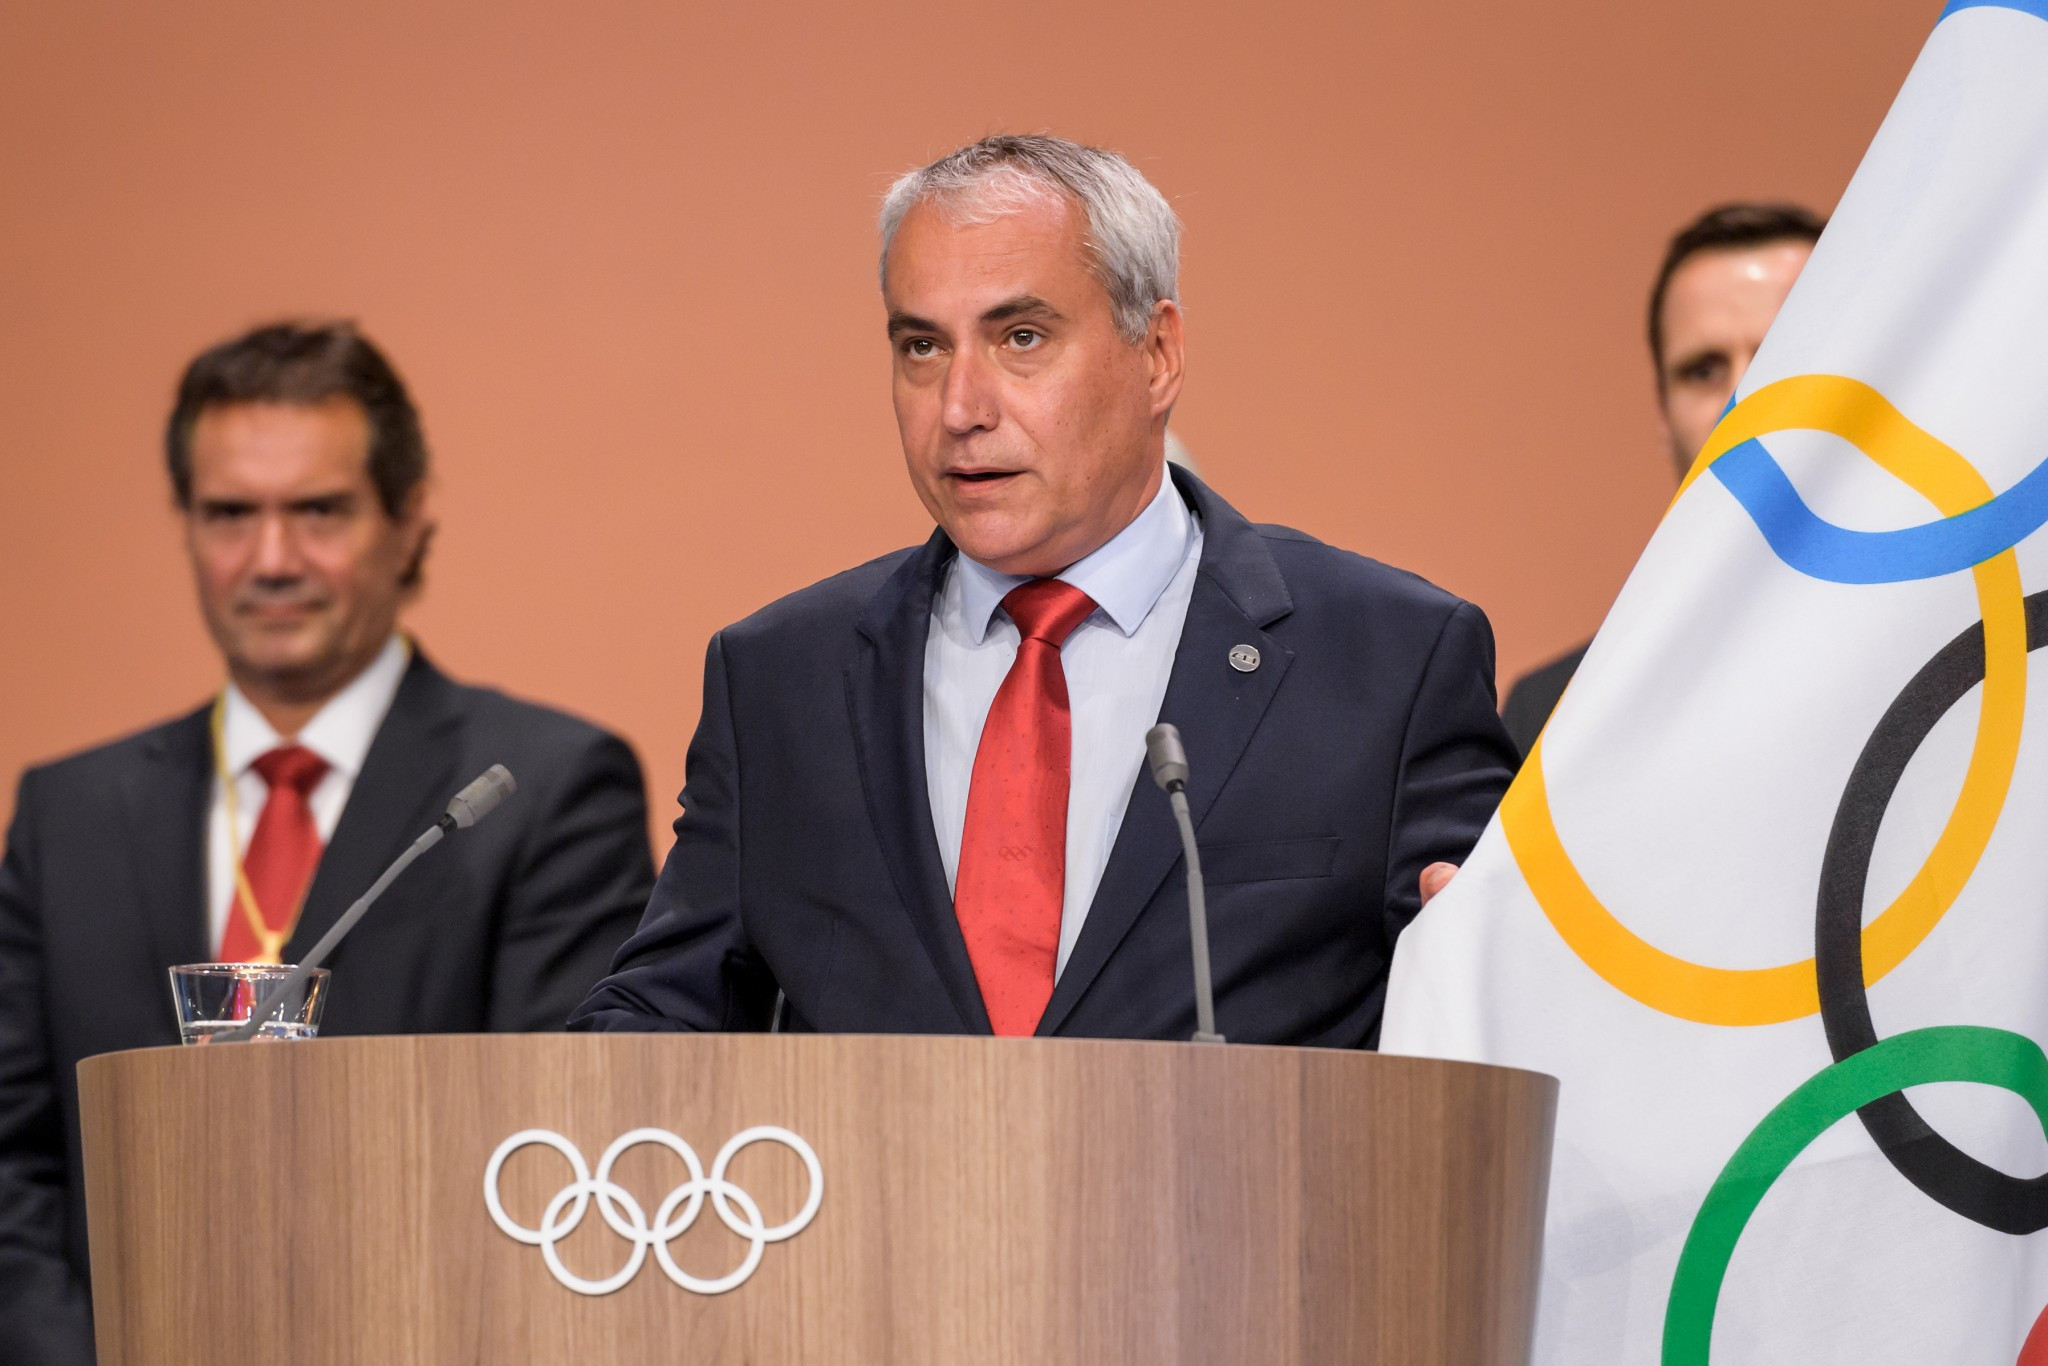 FEI President aims to boost role of federations in delivering Olympics after election as IOC member